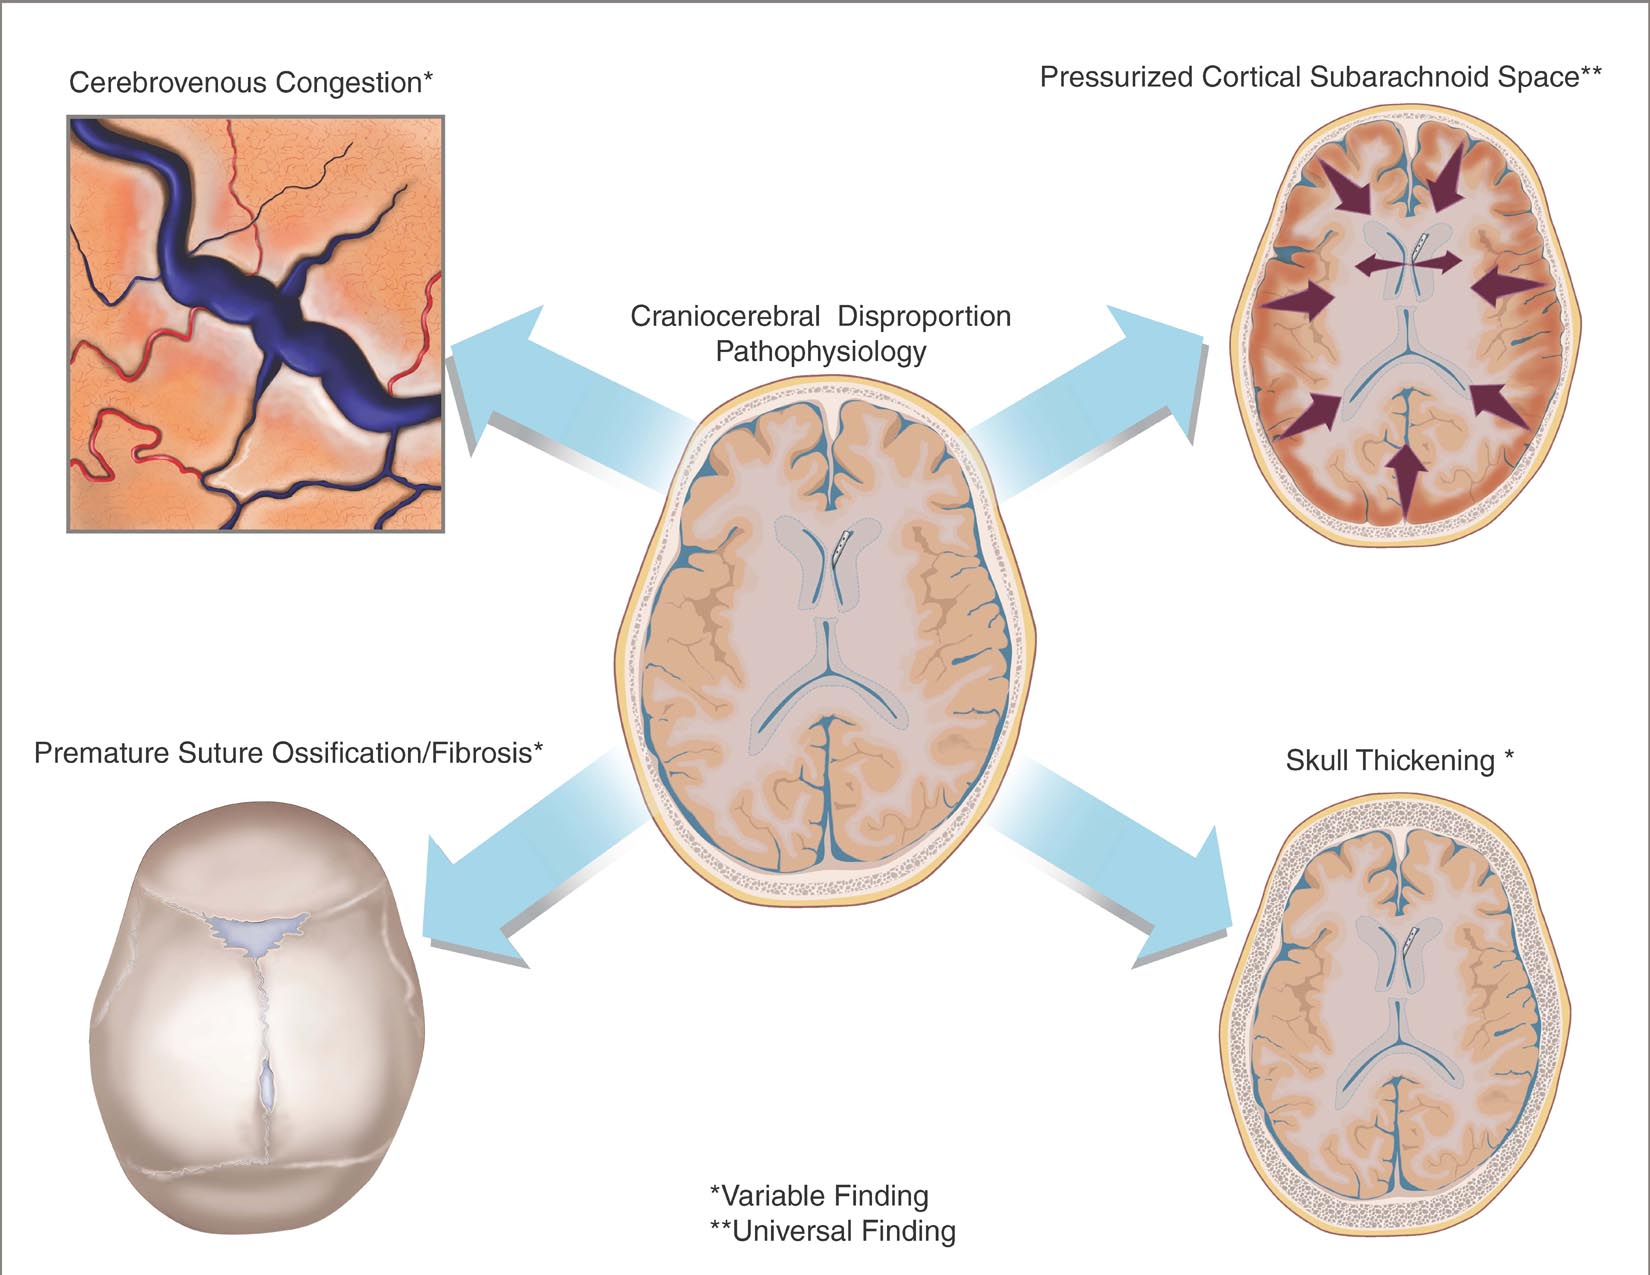 Pathophysiology of Craniocerebral disproportion